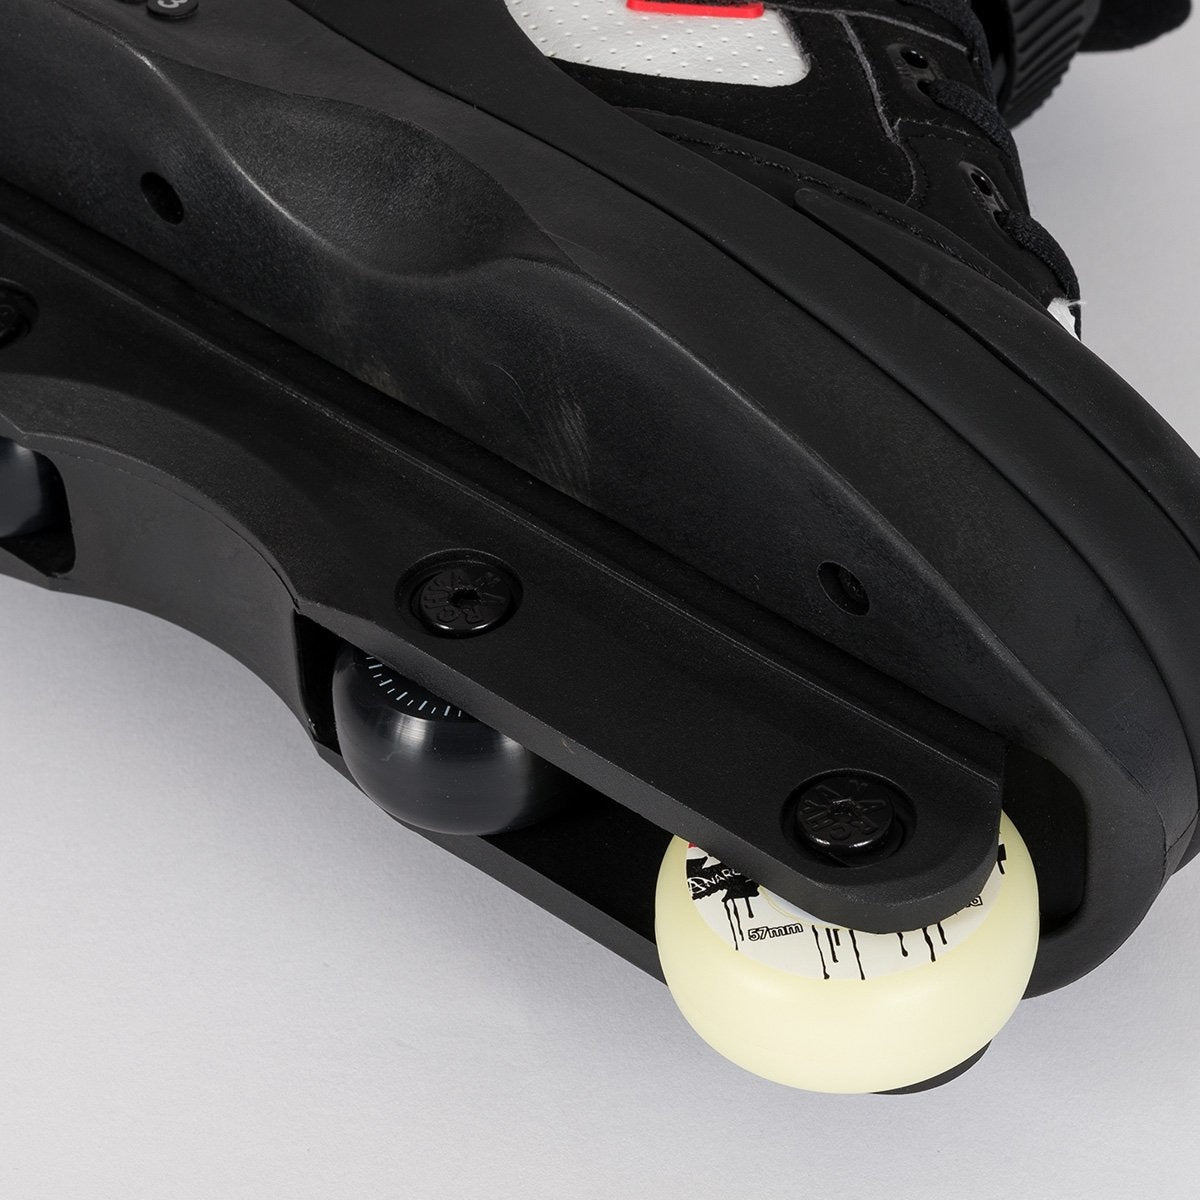 Anarchy Chaos 3 Black/White - Skates